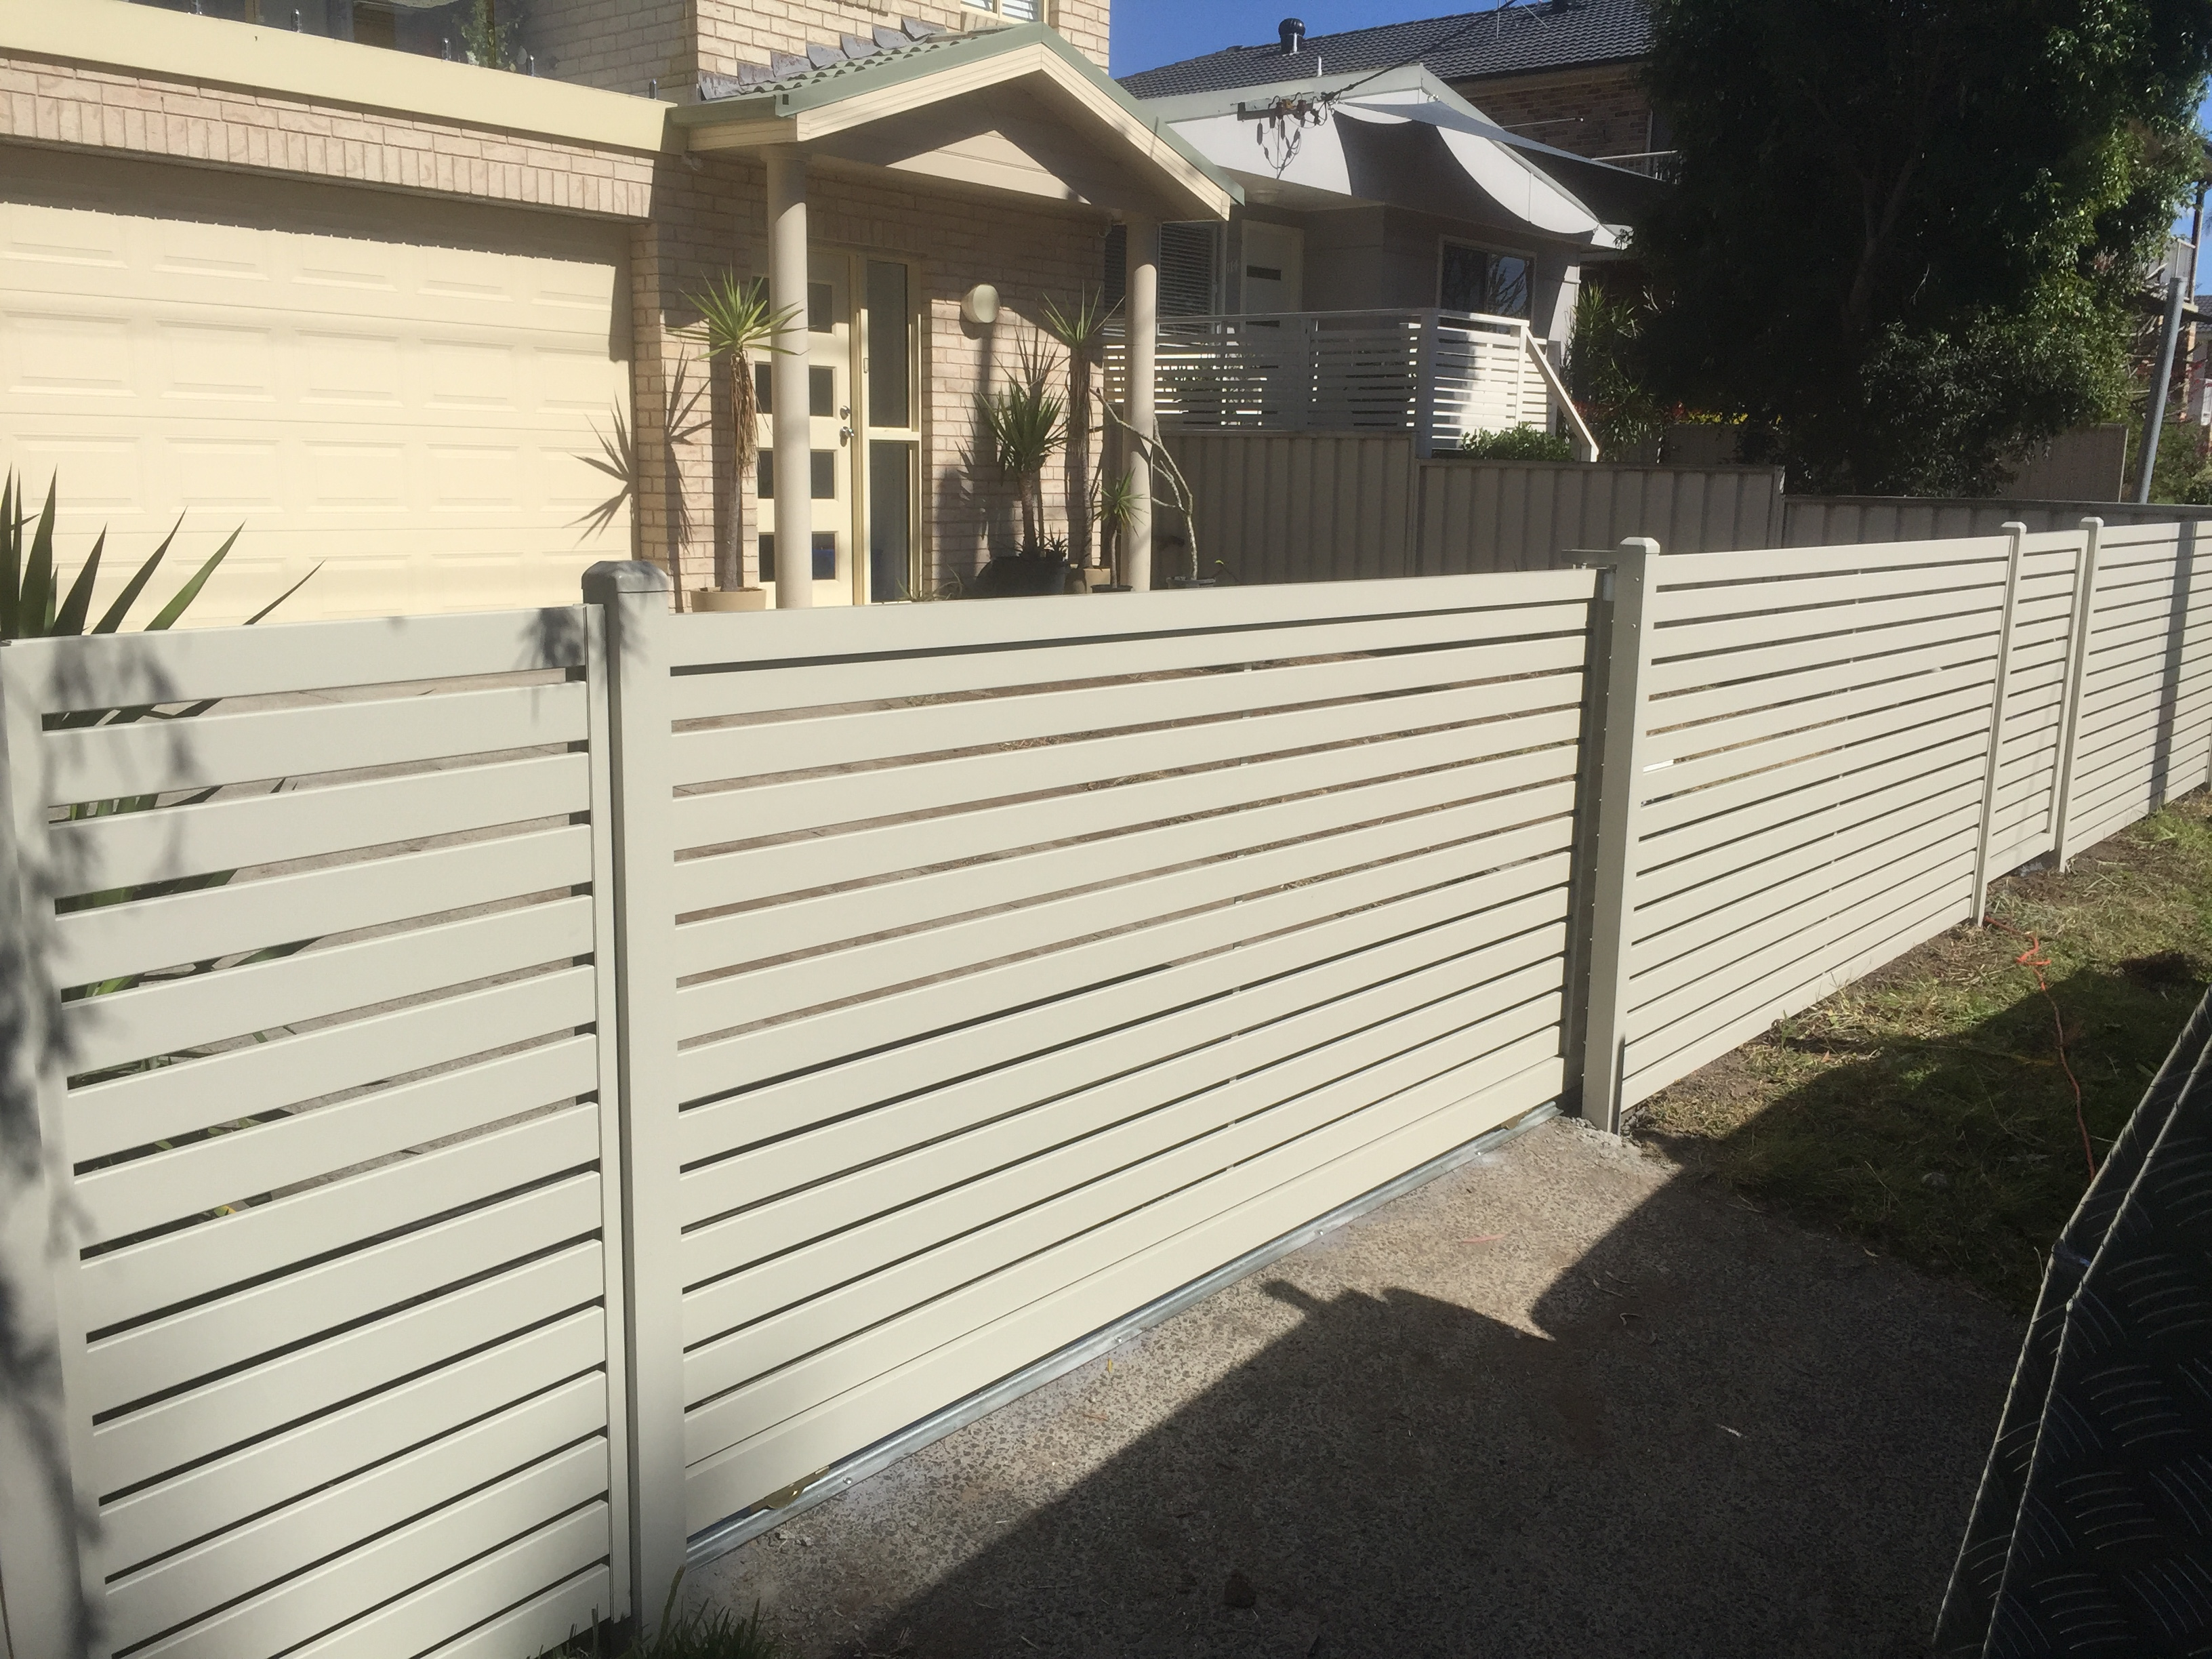 Slat gate and fencining